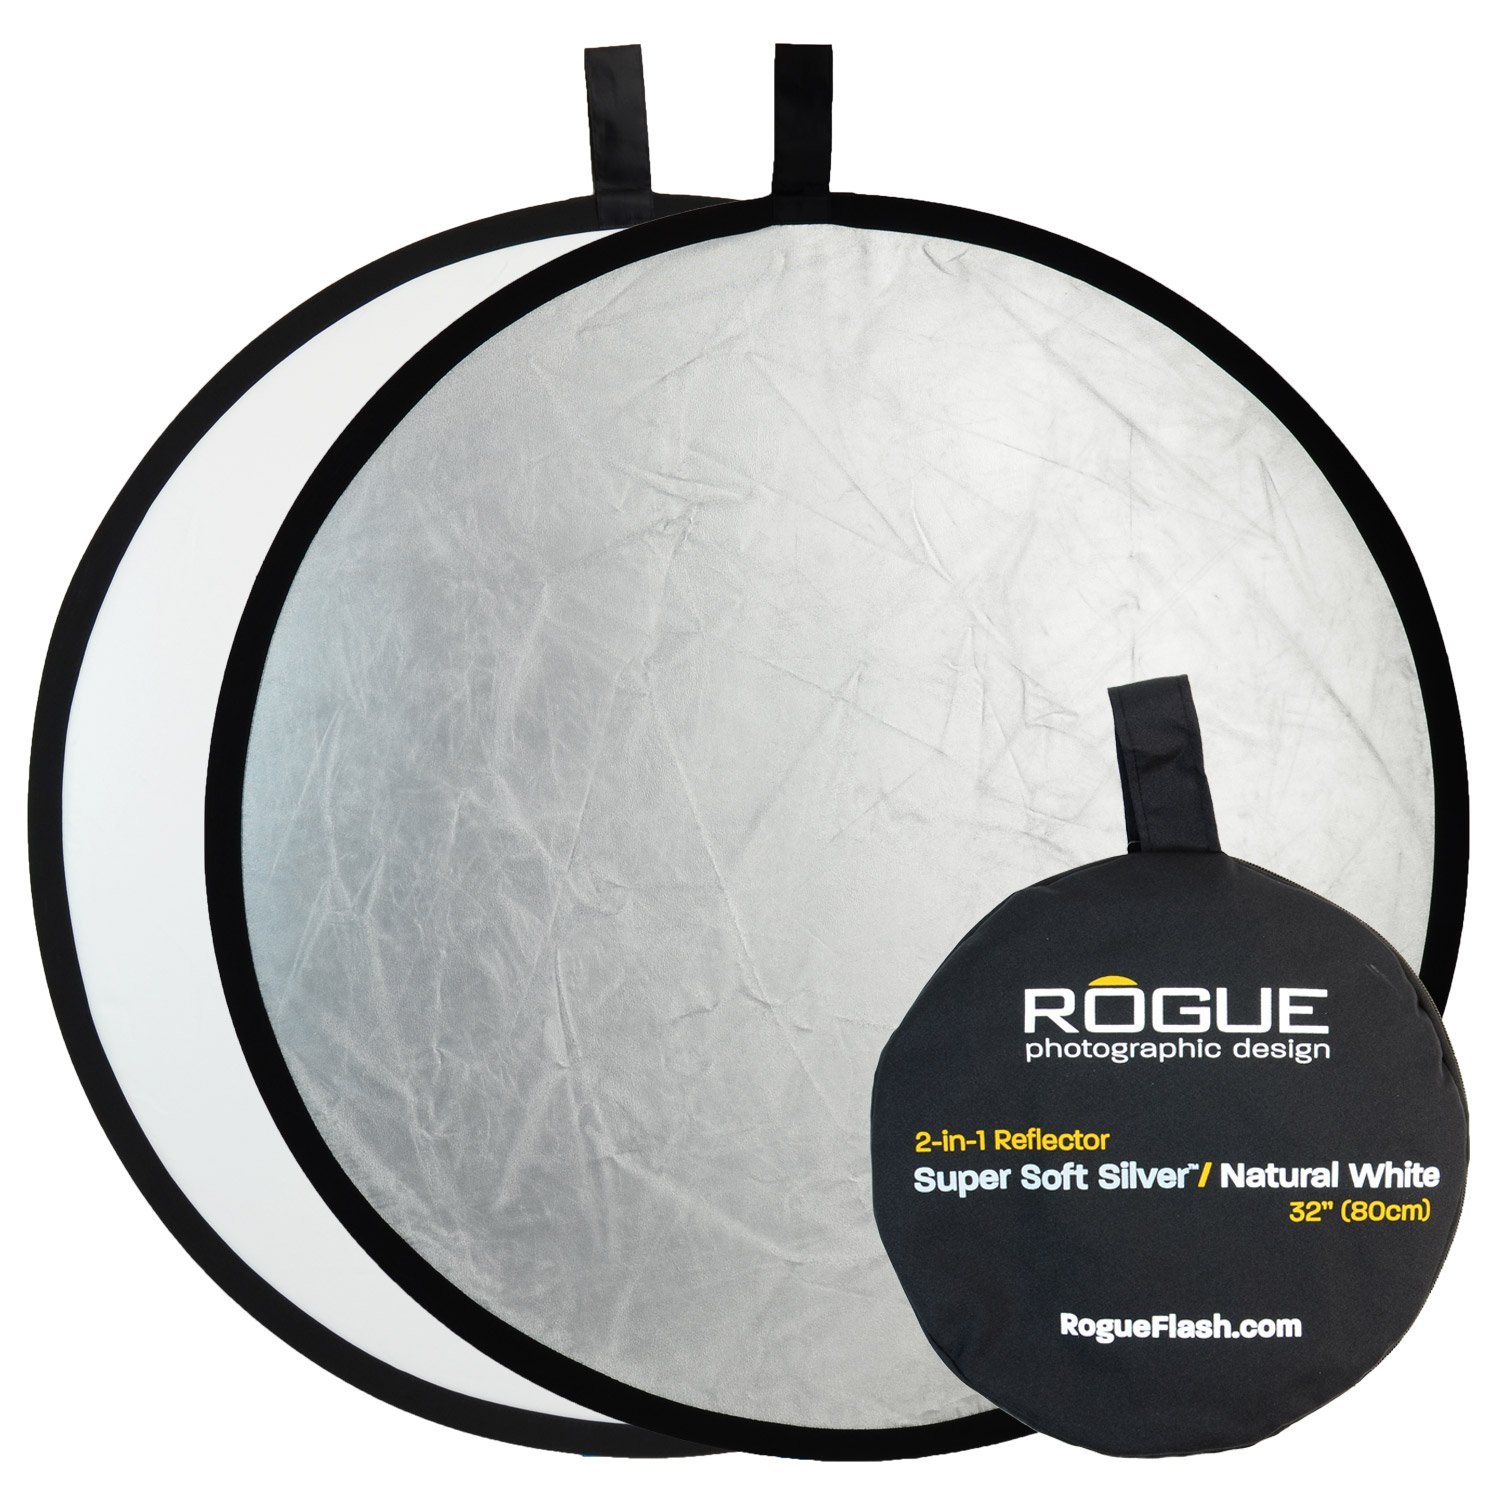 Rogue Photographic Design 2-in-1 Collapsible Reflector 32'', Super Soft Silver/Natural White (ROGUE32SW) by Rogue Photographic Design